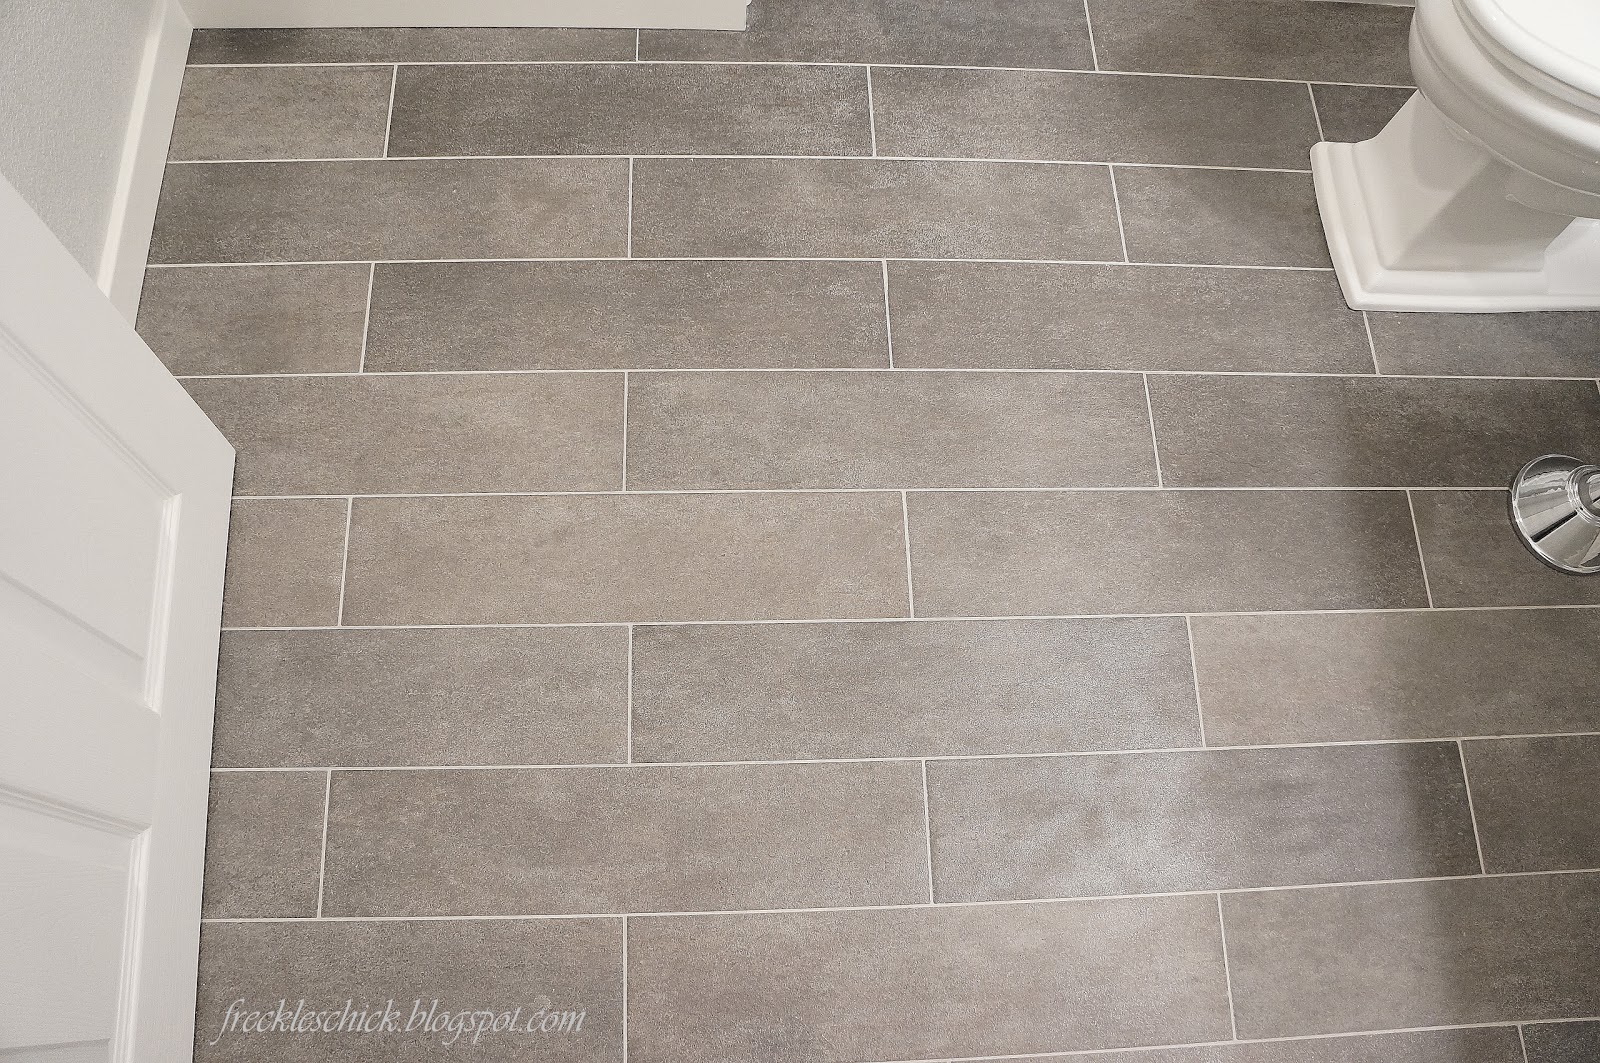 Bathroom Tile Flooring help need tile ideas hardwood floor ceiling ceramic tiles grout Plank Bathroom Floor Tiles